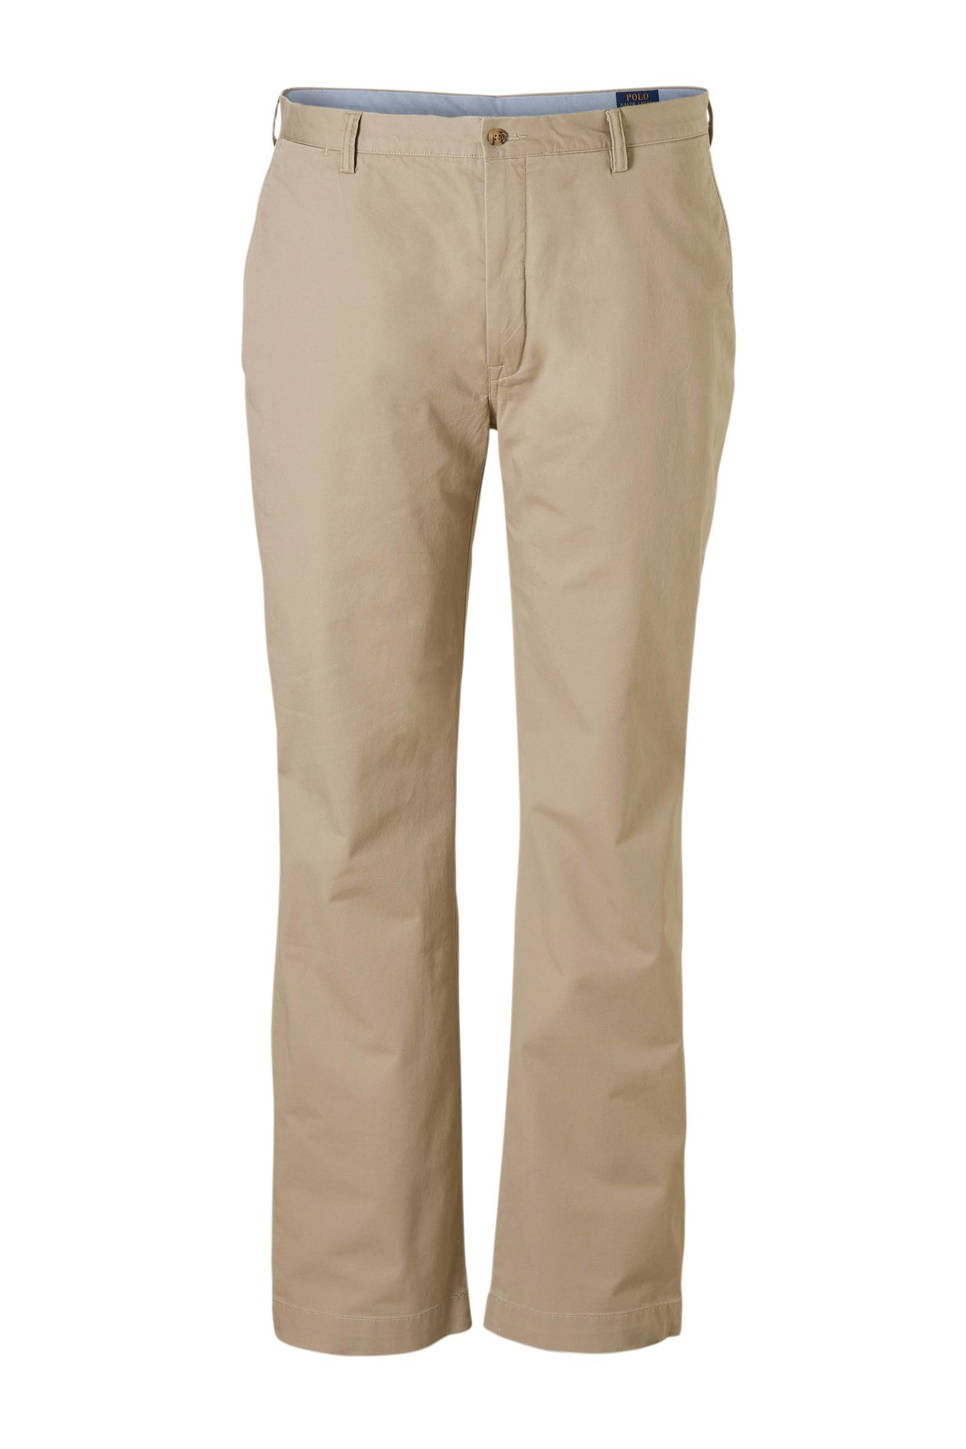 POLO Ralph Lauren Big & Tall +size classic fit pantalon, Beige